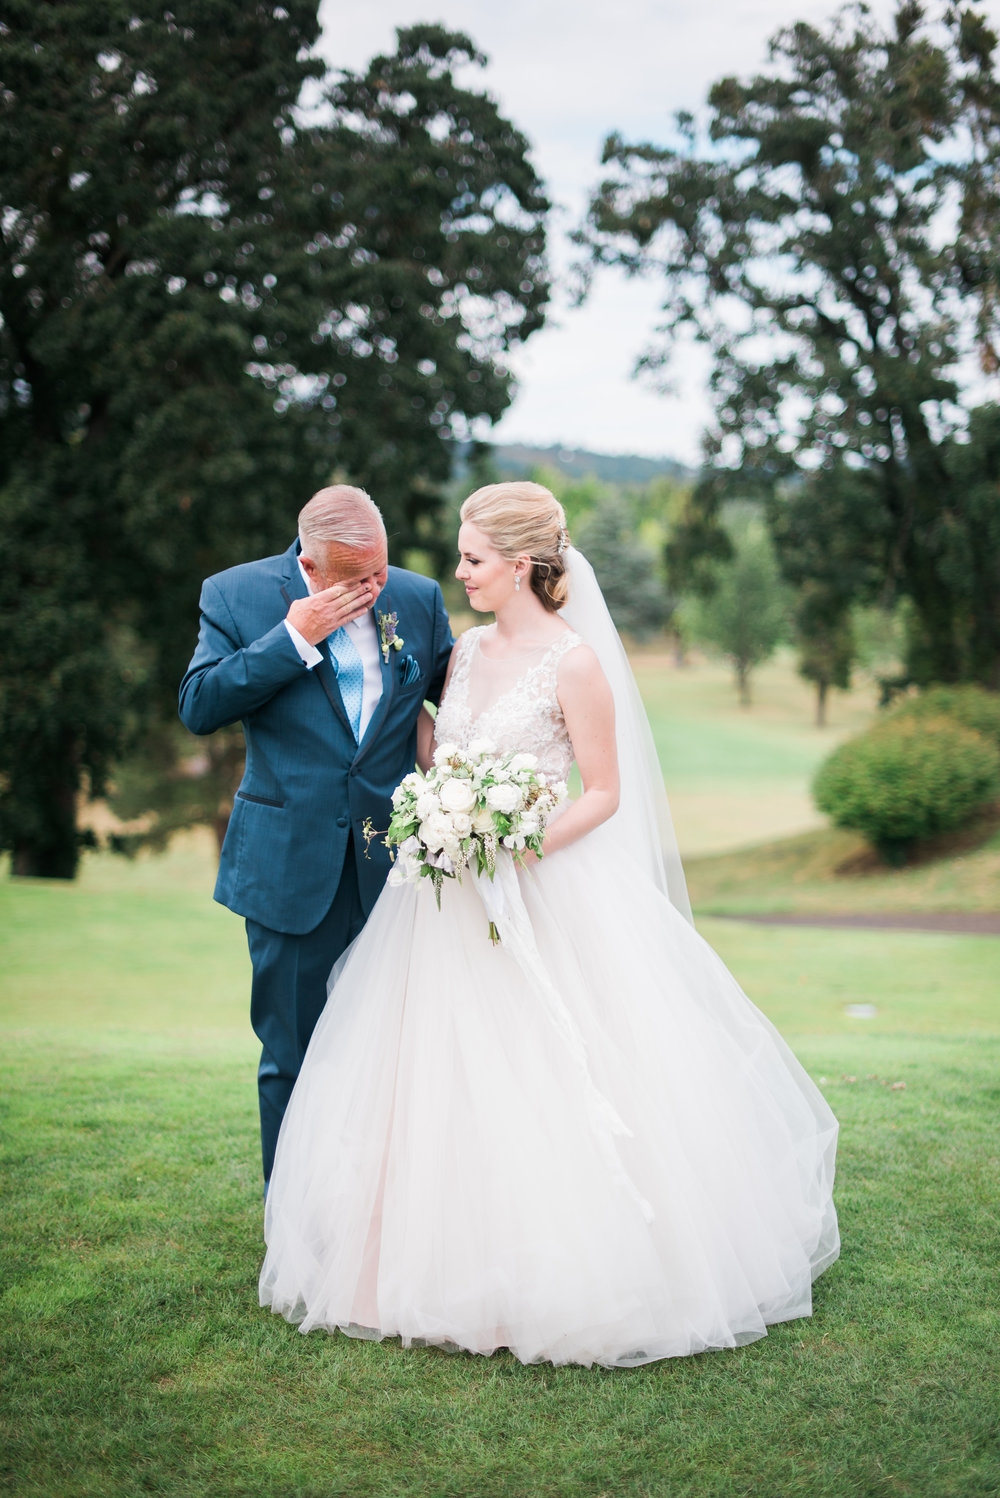 Bridalbliss.com | Salem Wedding | Oregon Event Planning + Design | Deyla Huss Photography